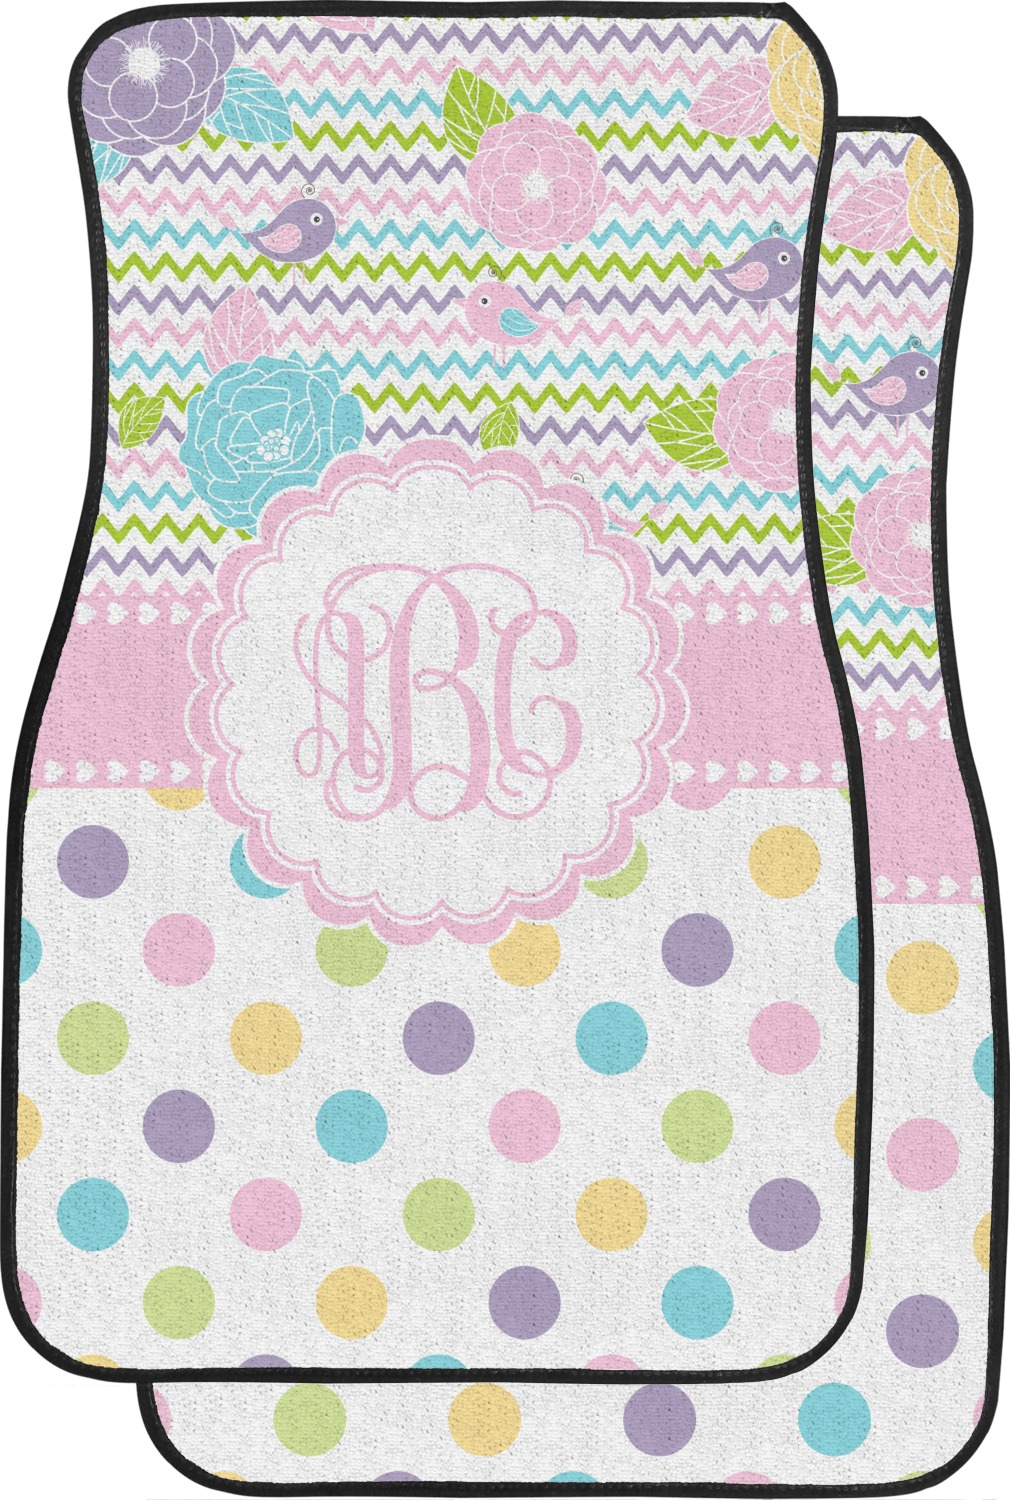 girly car floor mats. Exellent Floor Girly Girl Car Floor Mats Front Seat Personalized For